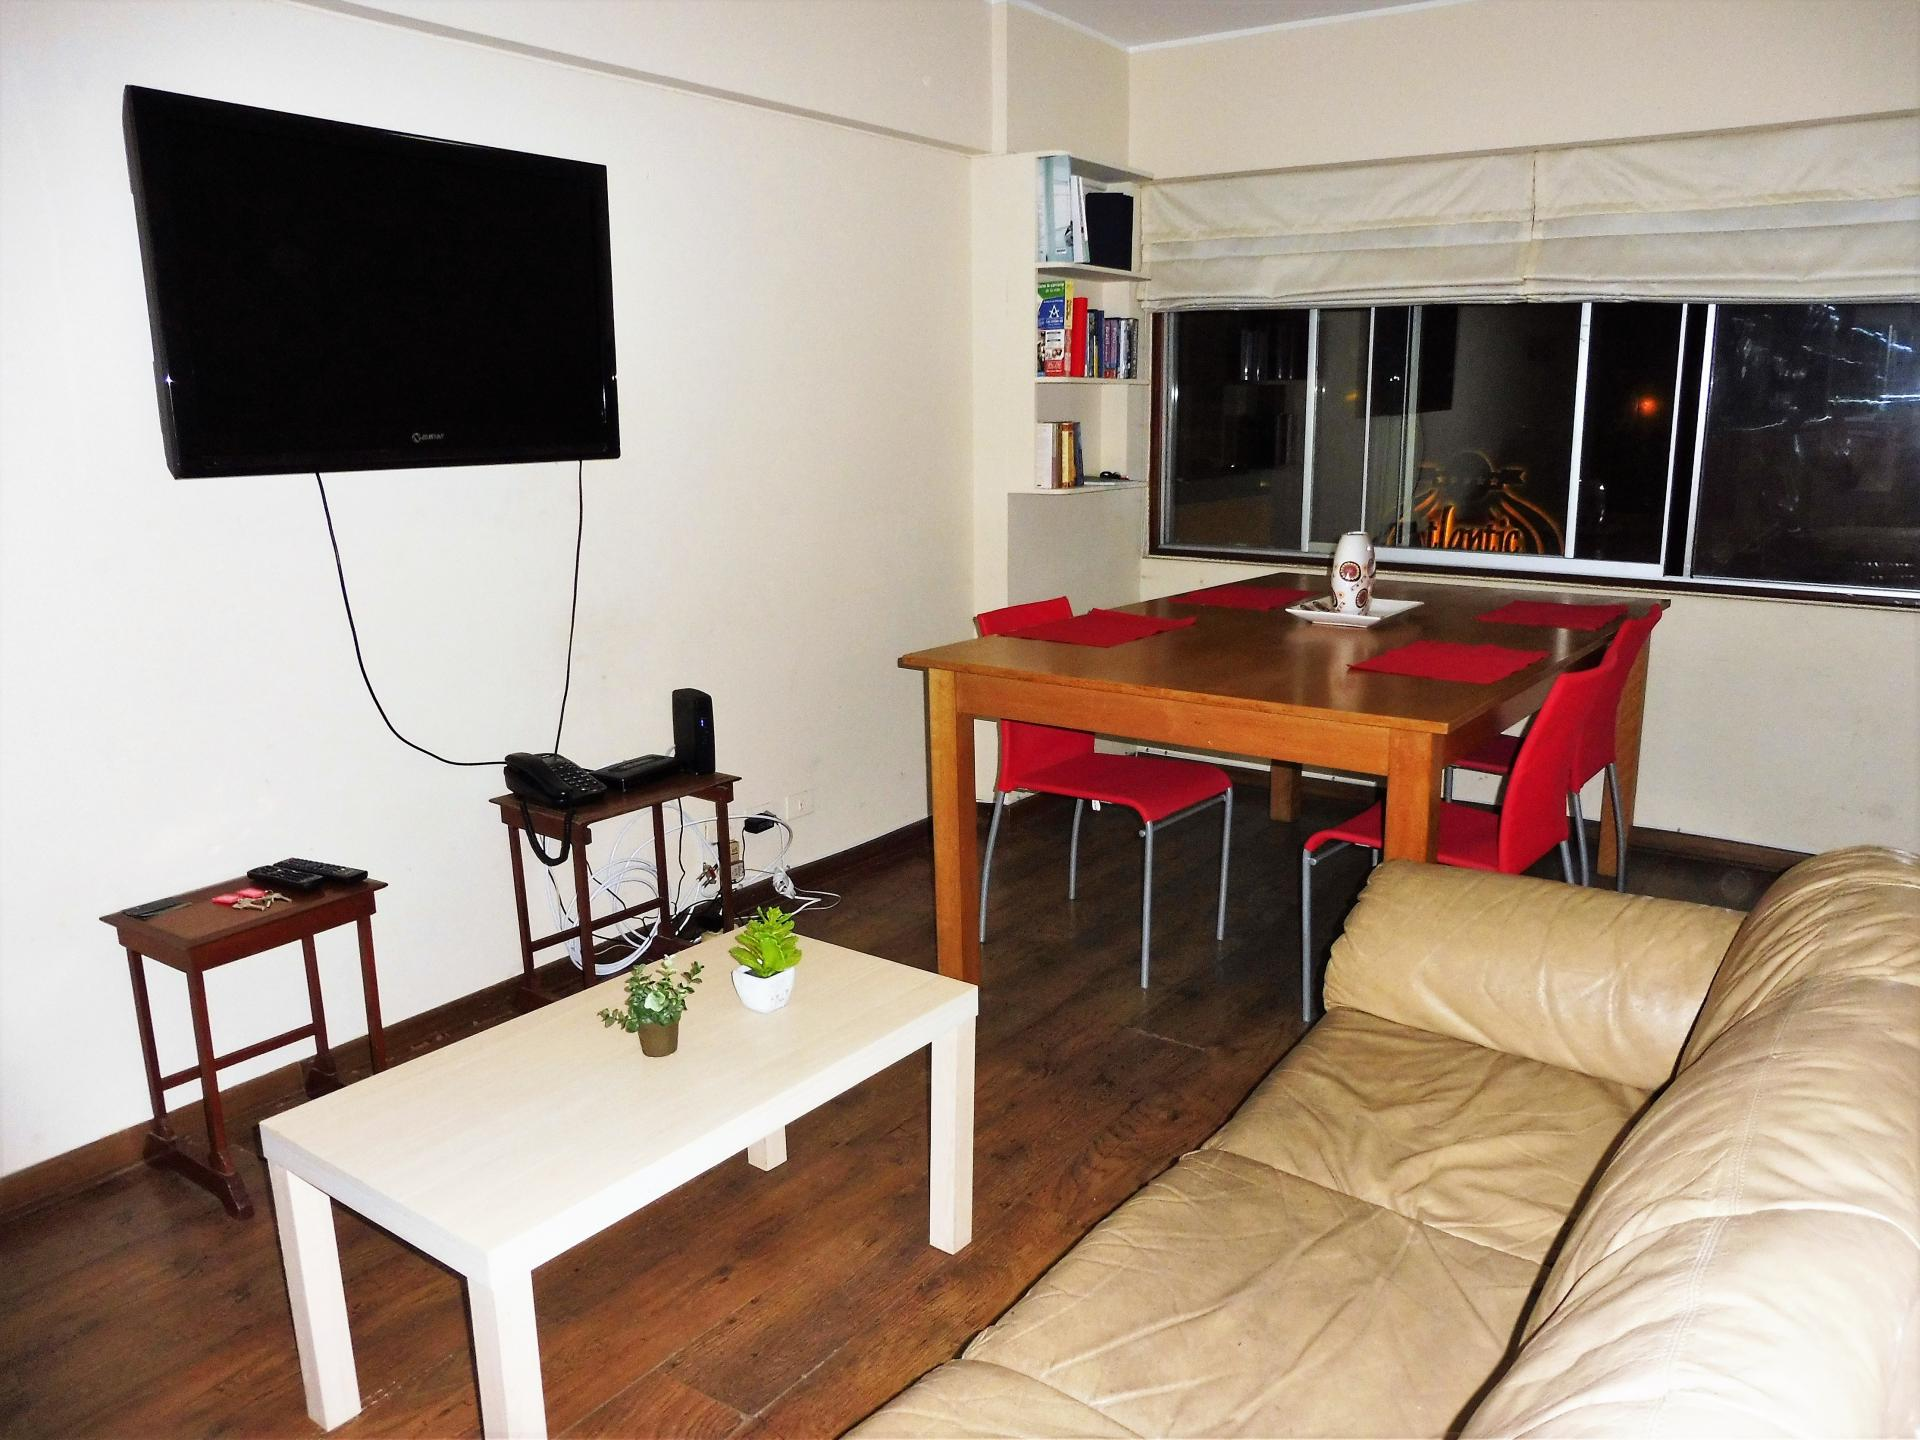 LIMA MIRAFLORES 1 BED LOCATION AND COMFORT